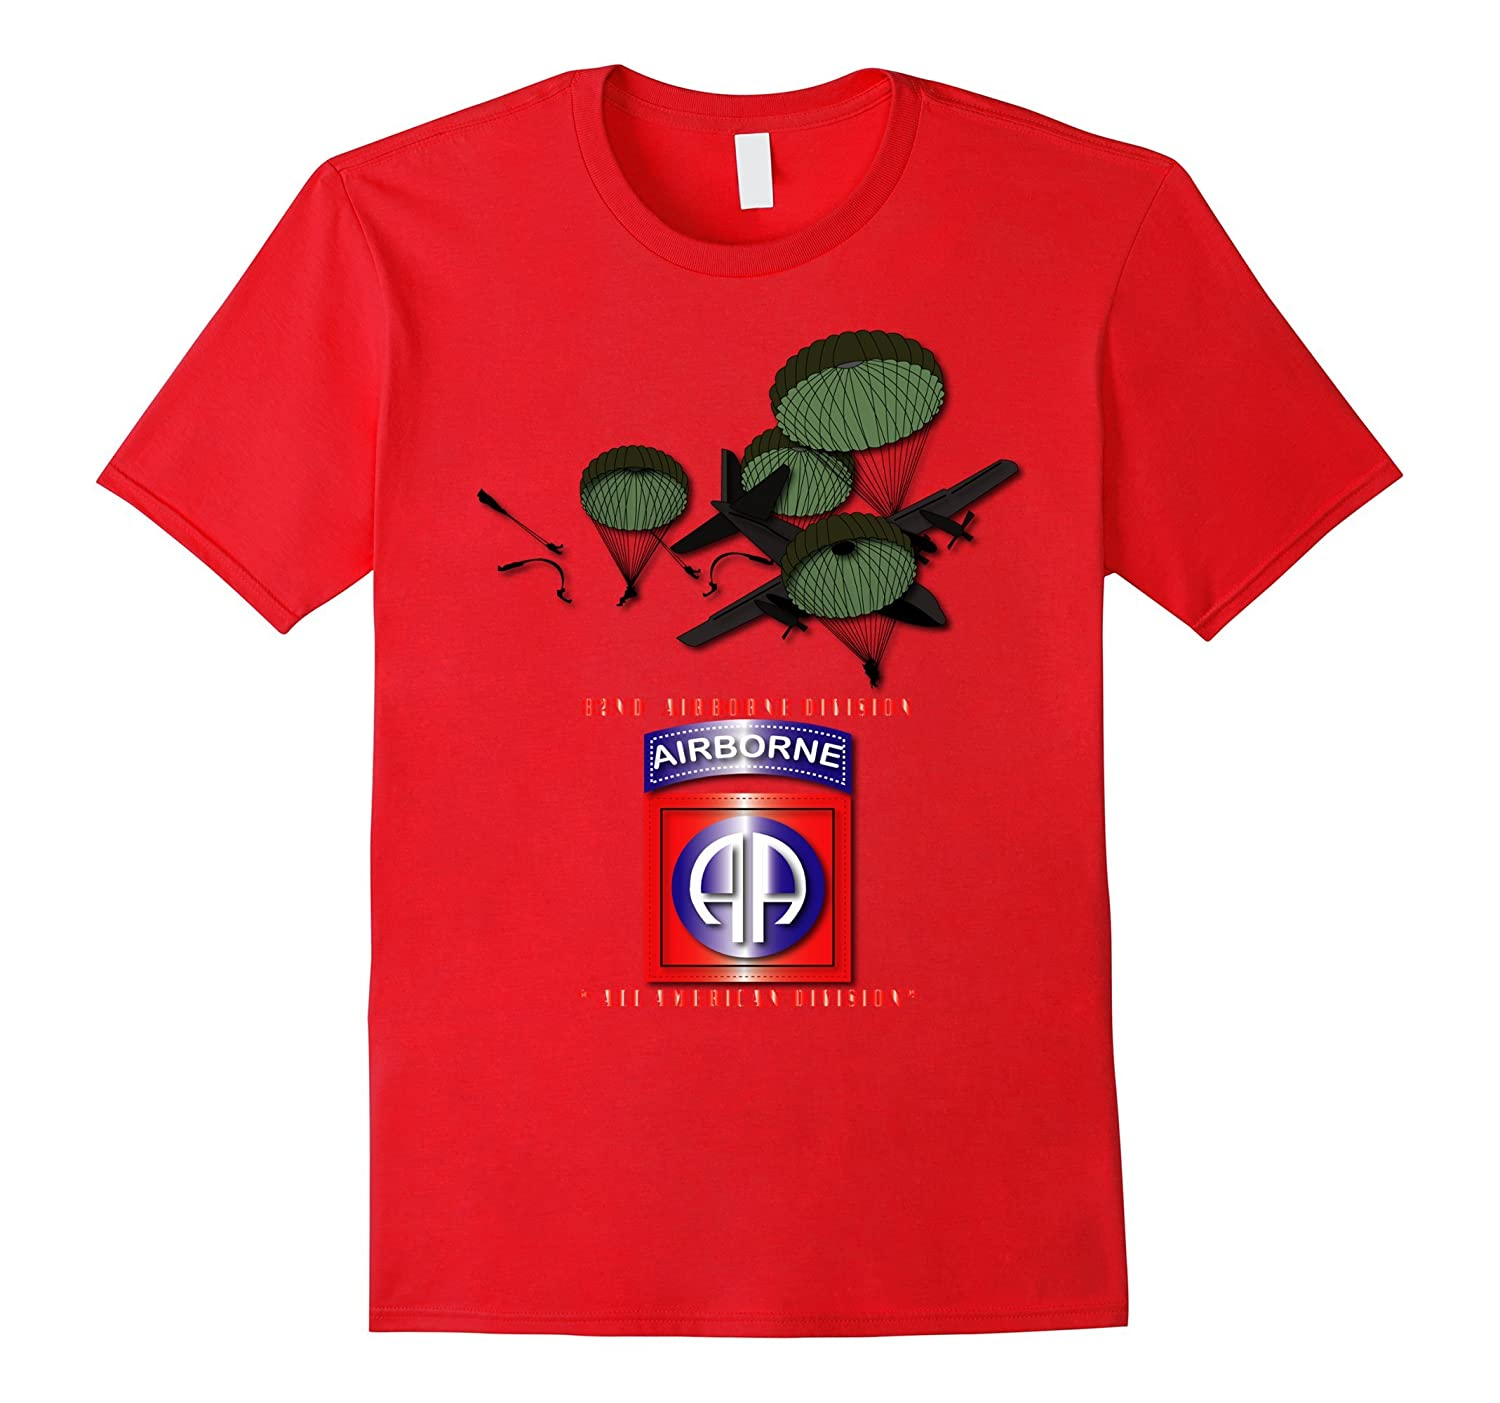 82nd Airborne Division - All American Division Tshirt-TH